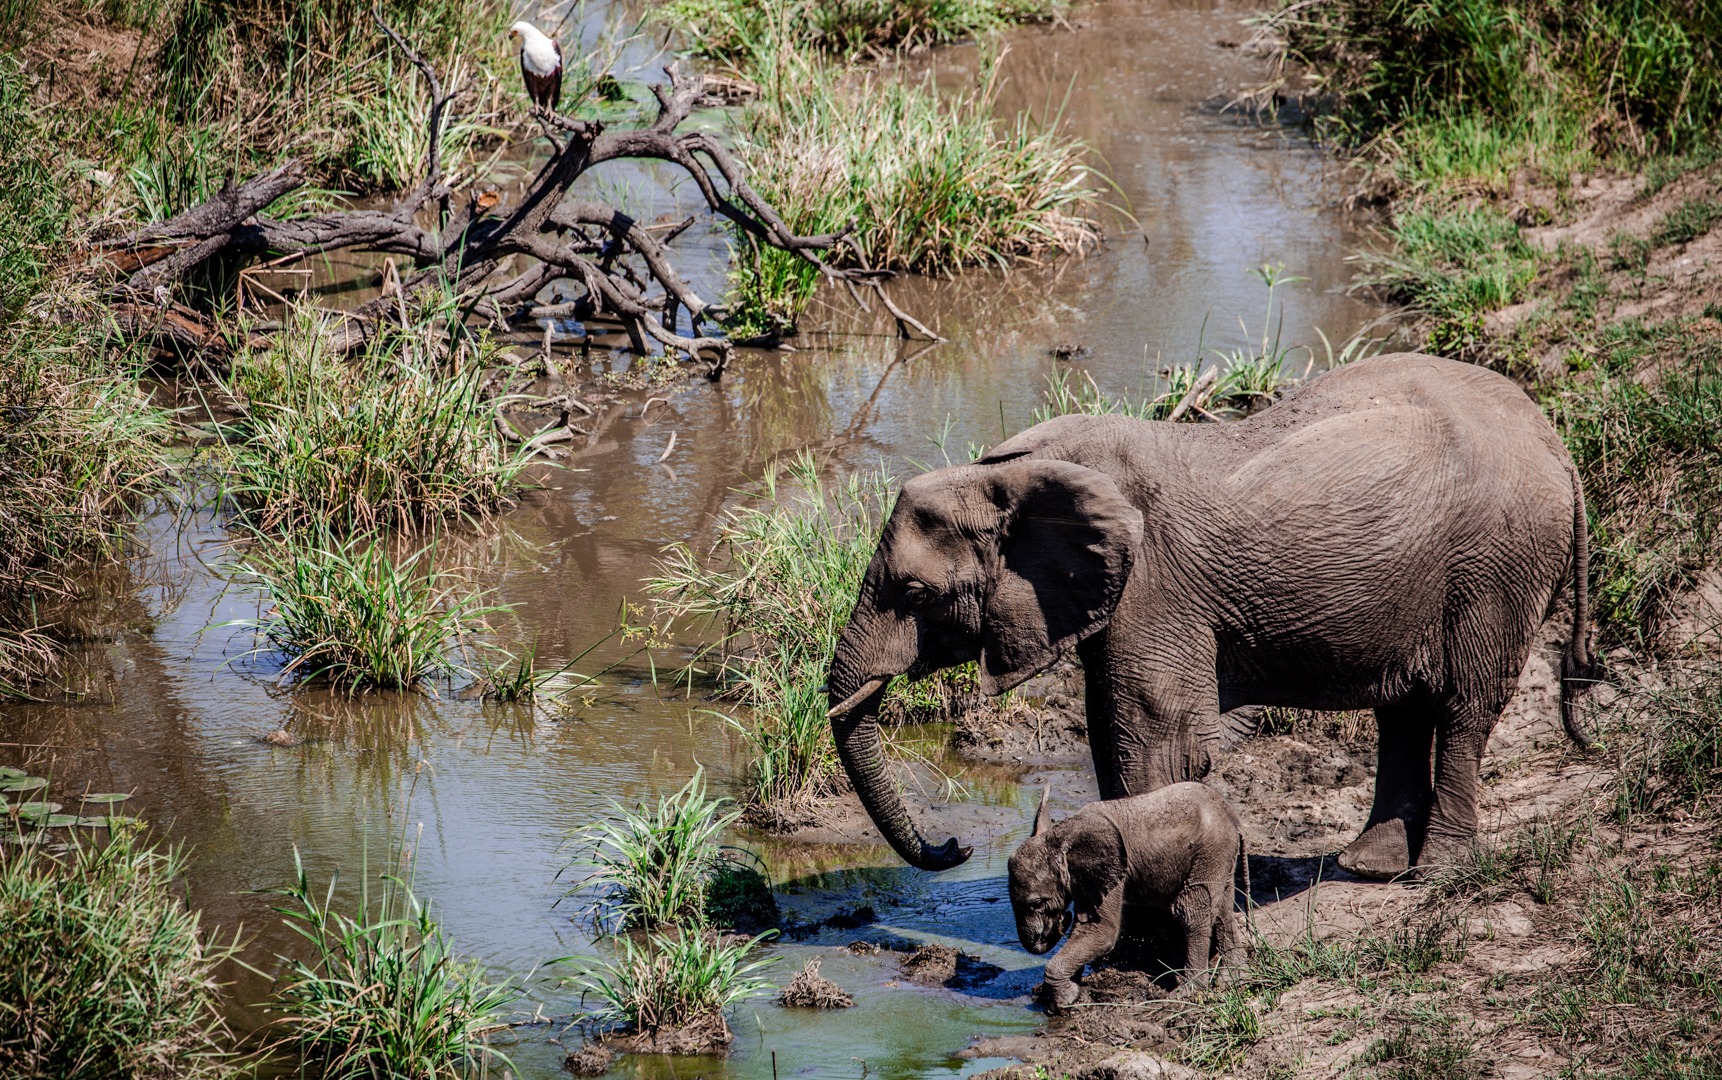 Mother and baby elephant cool off with a drink in Kruger National Park, South Africa.